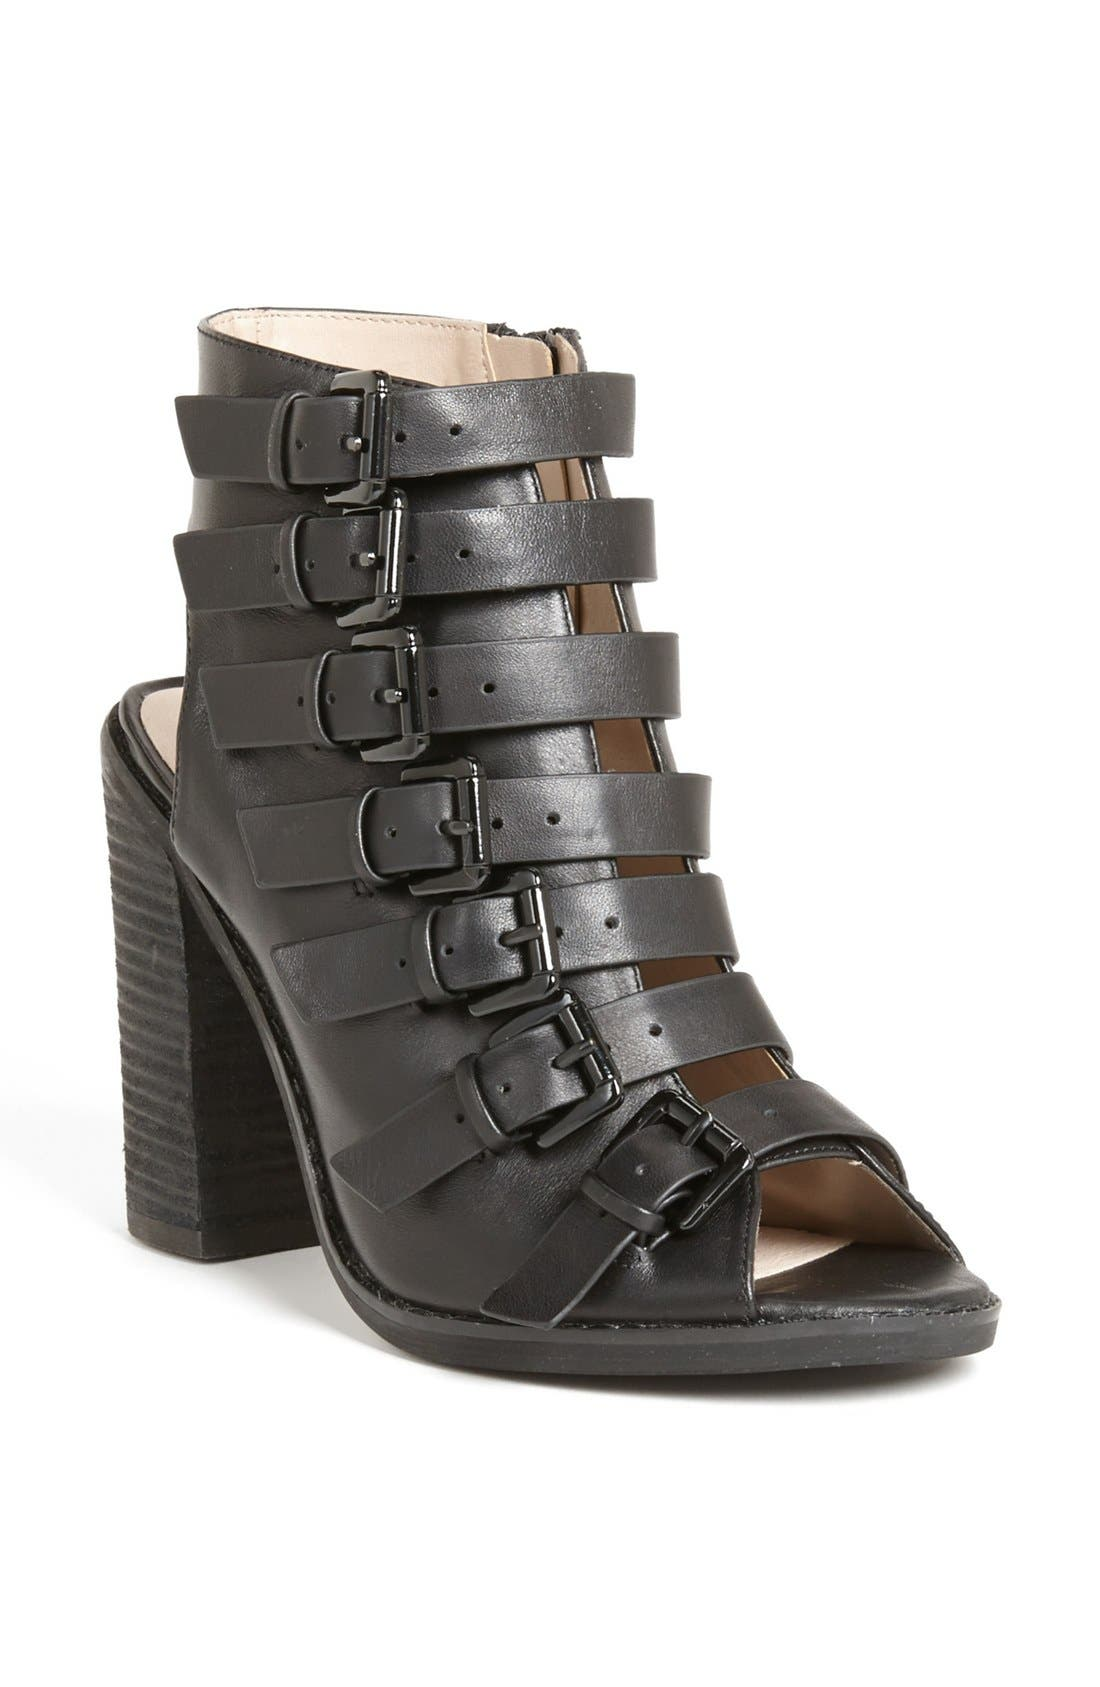 Main Image - Topshop 'Ragged' Multi Buckle Bootie